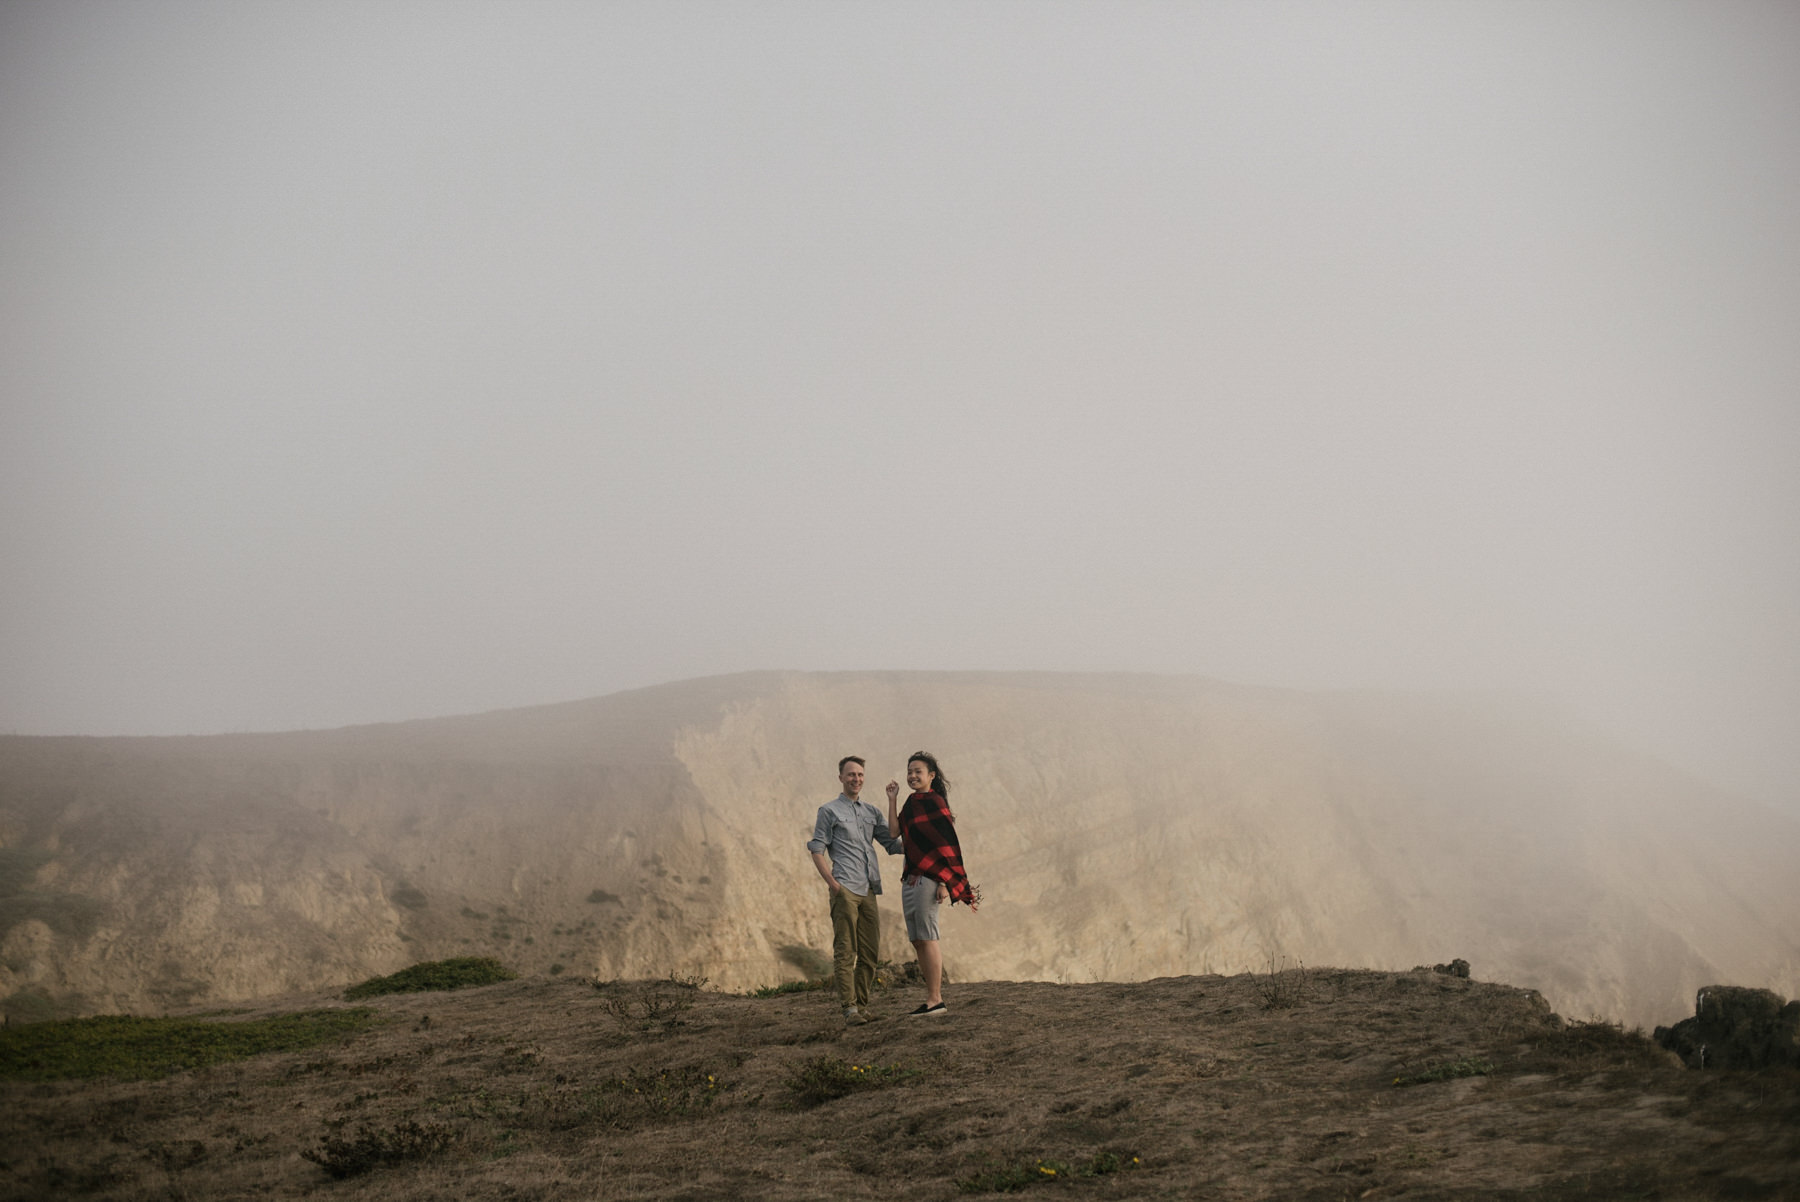 Daring Wanderer Photography - Daring Wanderer - Destination Wedding Photographer - Point Reyes California - Point Reyes Engagement - California wedding photographer - Engagement - Chimney Rock - Limantour Beach - foggy engagement